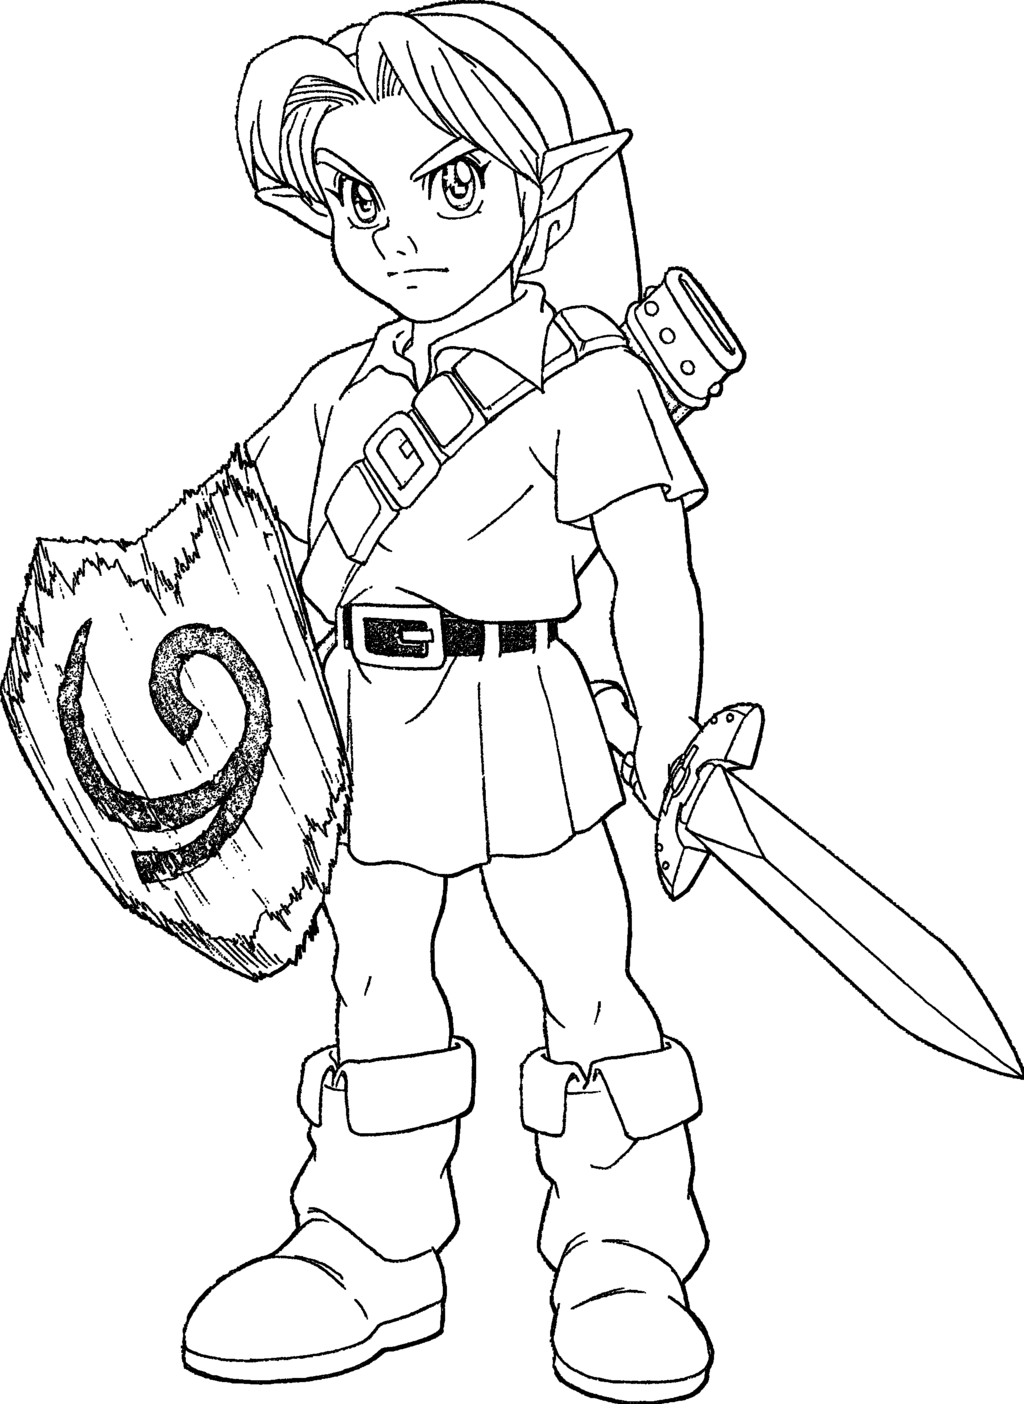 Ocarina Of Time Coloring Pages at GetDrawings.com | Free for ...